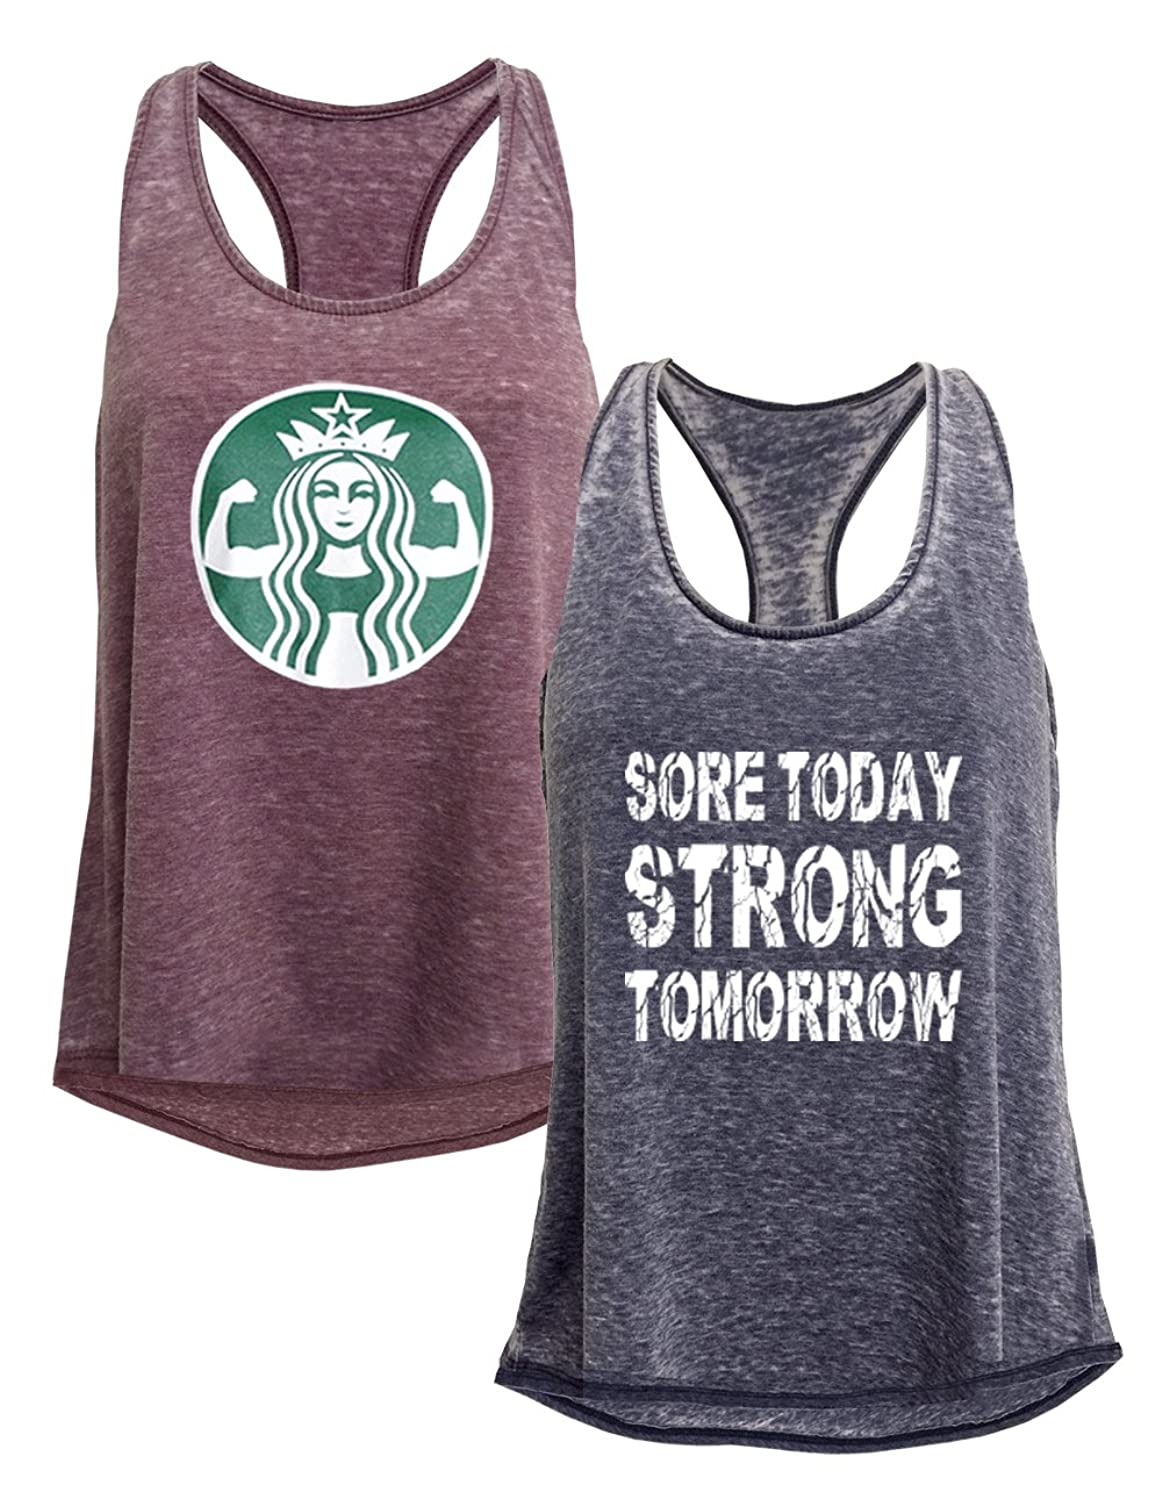 Tough Cookie's Women's Mineral Wash Burnout Tank Top Workout Print 2 Pack Deal